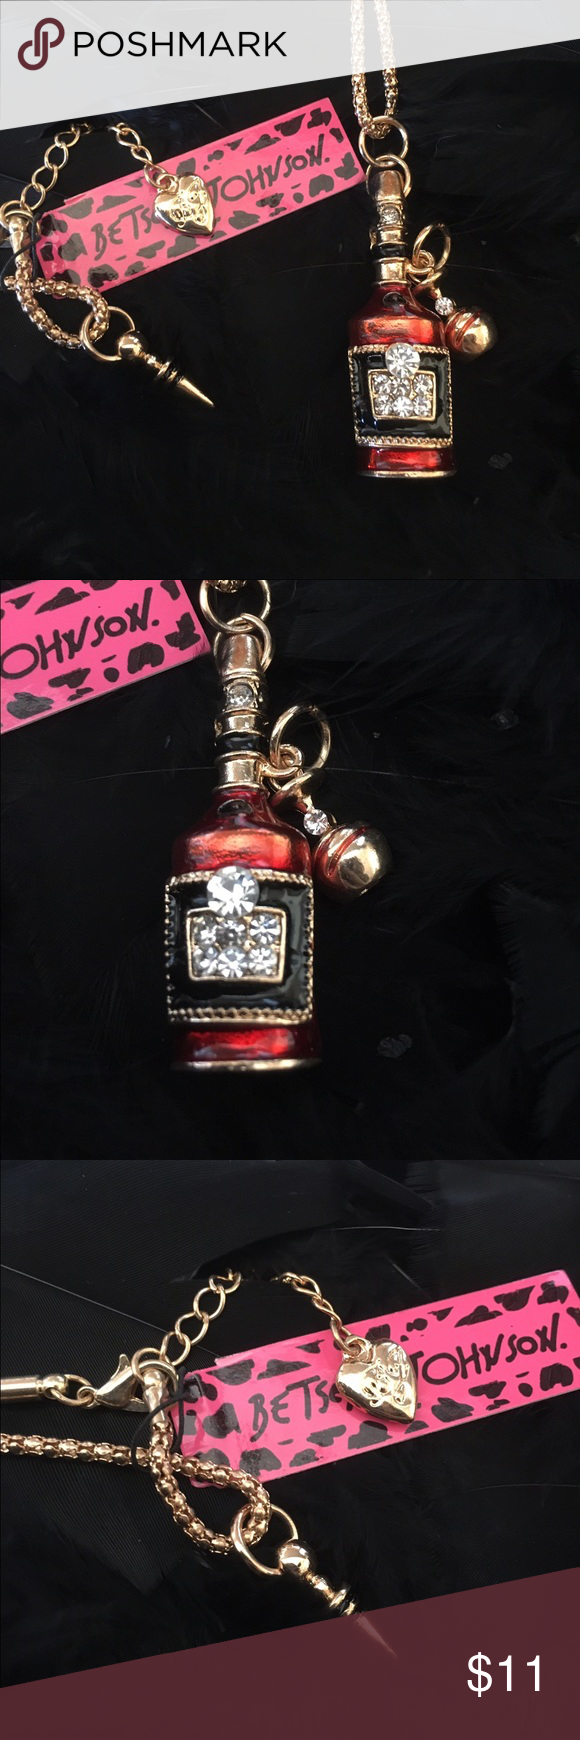 NWT Betsey Johnson Wine Bottle Necklace Brand new! Stunning gold tone necklace with vintage looking red tone wine bottle with wine glass accented with a cork stopper at end of chain ! Betsey Johnson Jewelry Necklaces